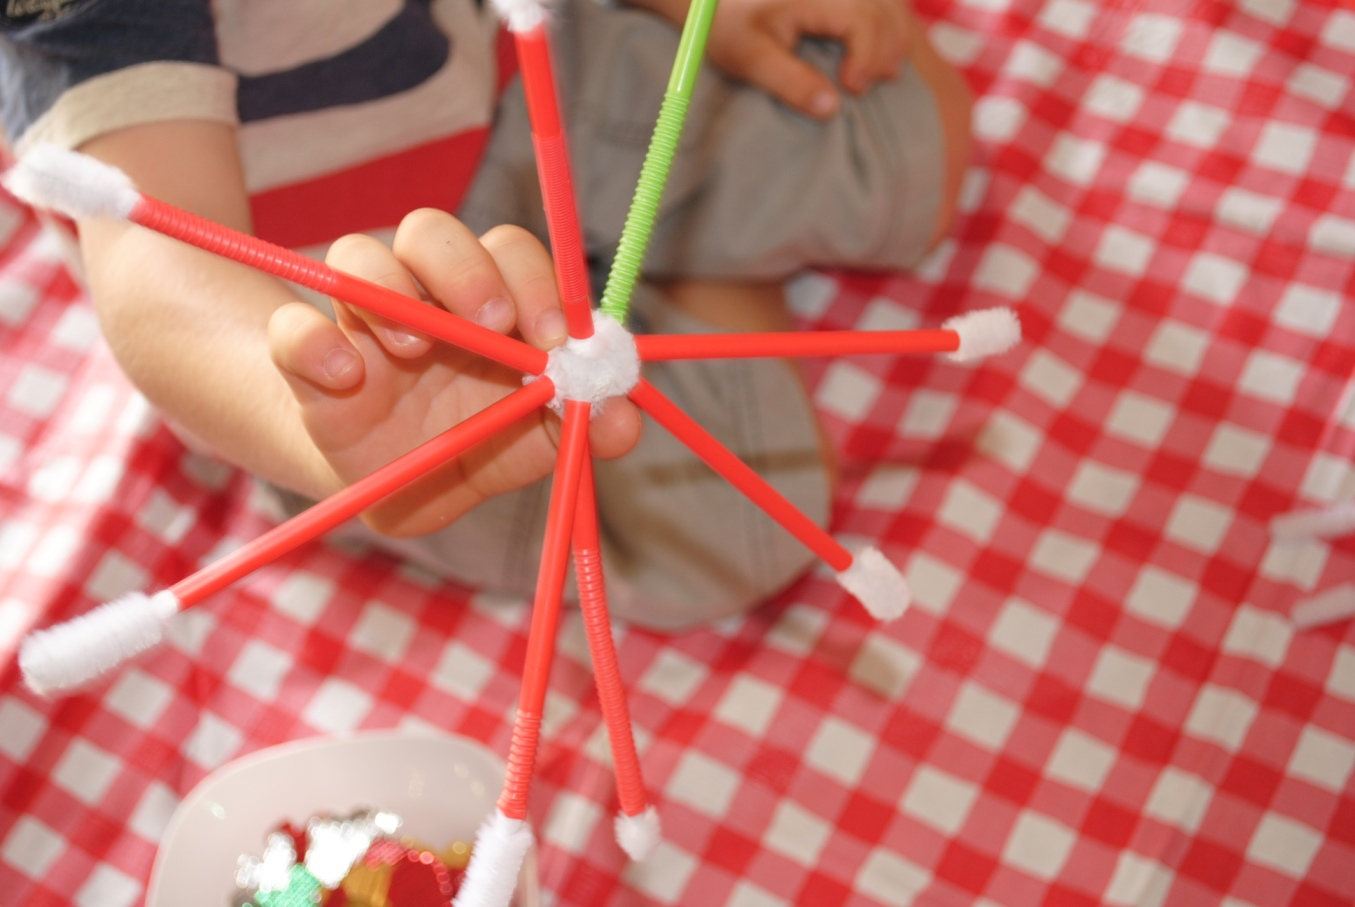 Arts and crafts for 3 year old - A Very Kid Friendly Non Messy Easy Xmas Craft Project Both 5 Year Olds